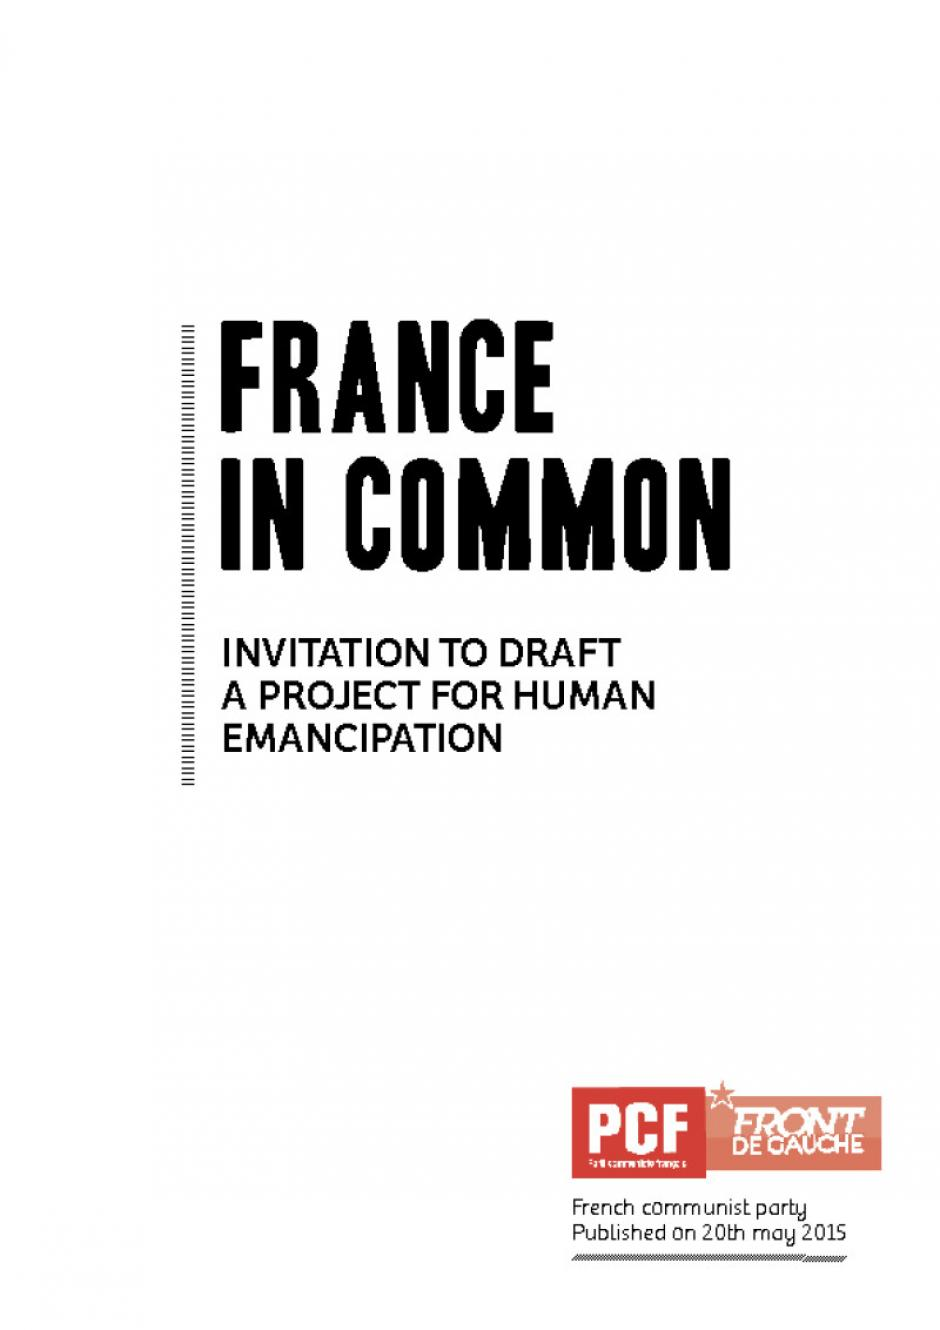 France in common : Invitation to draft a project for human emancipation